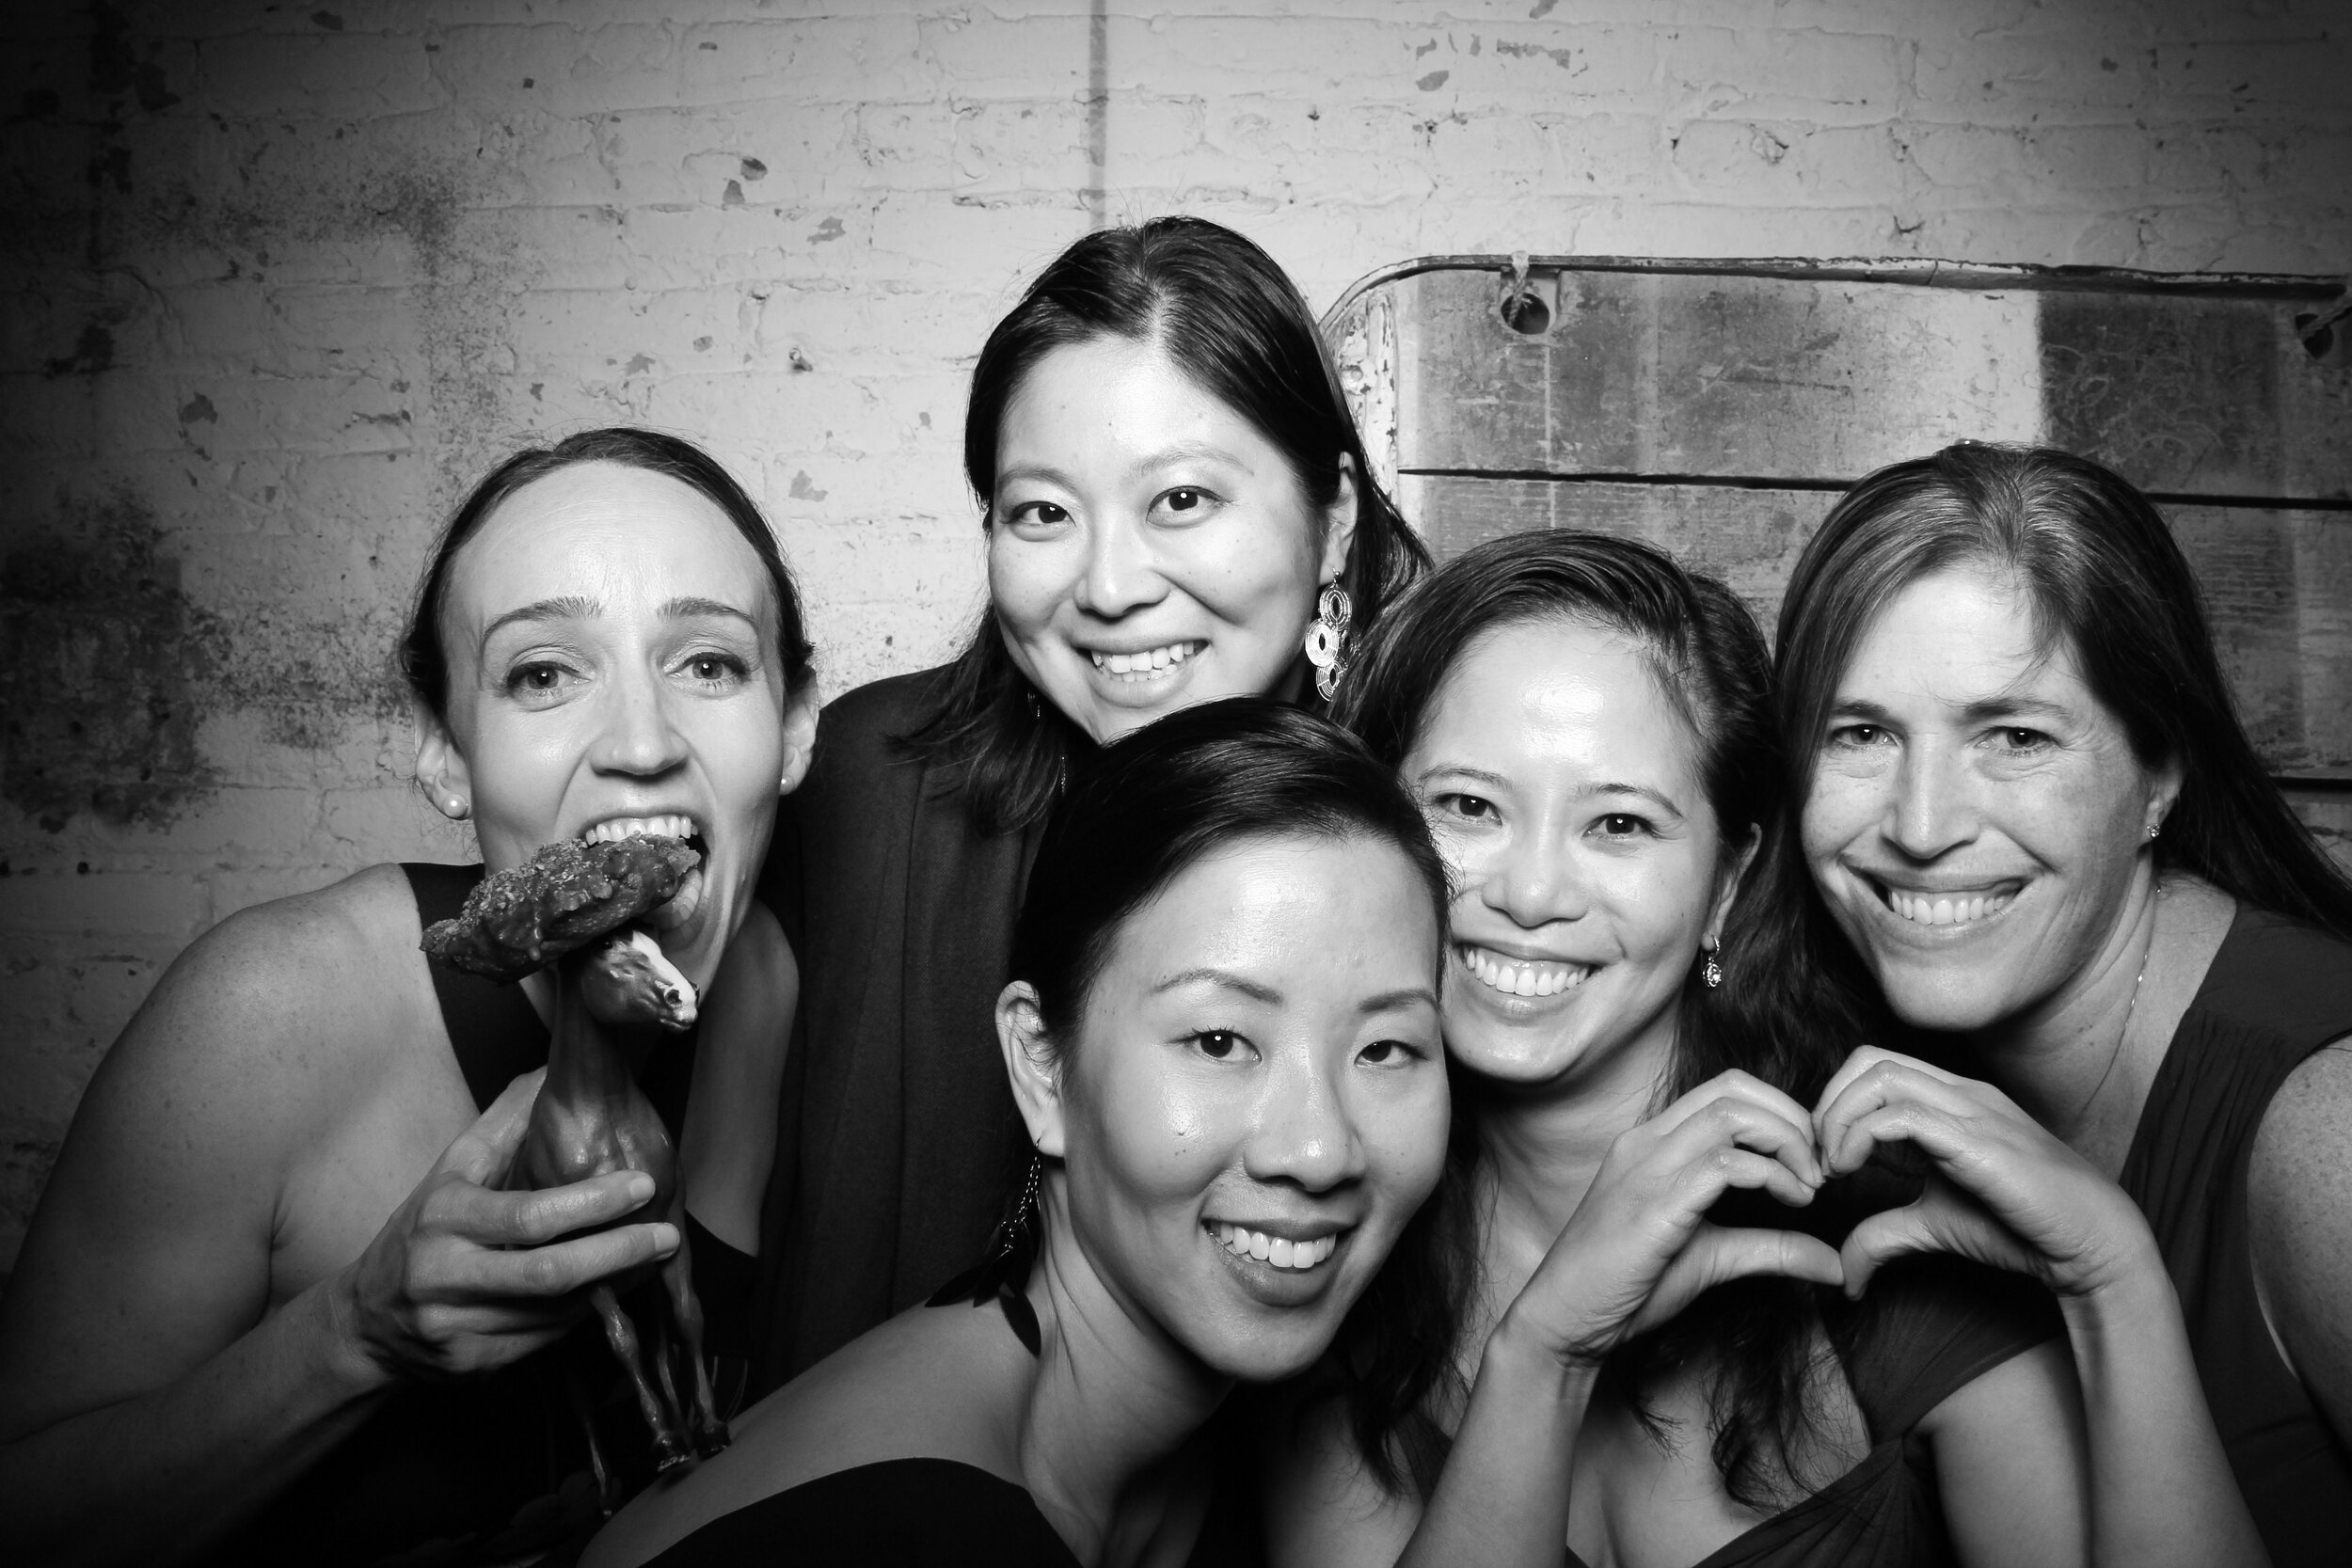 Chicago_Vintage_Wedding_Photobooth_Joinery_14.jpg